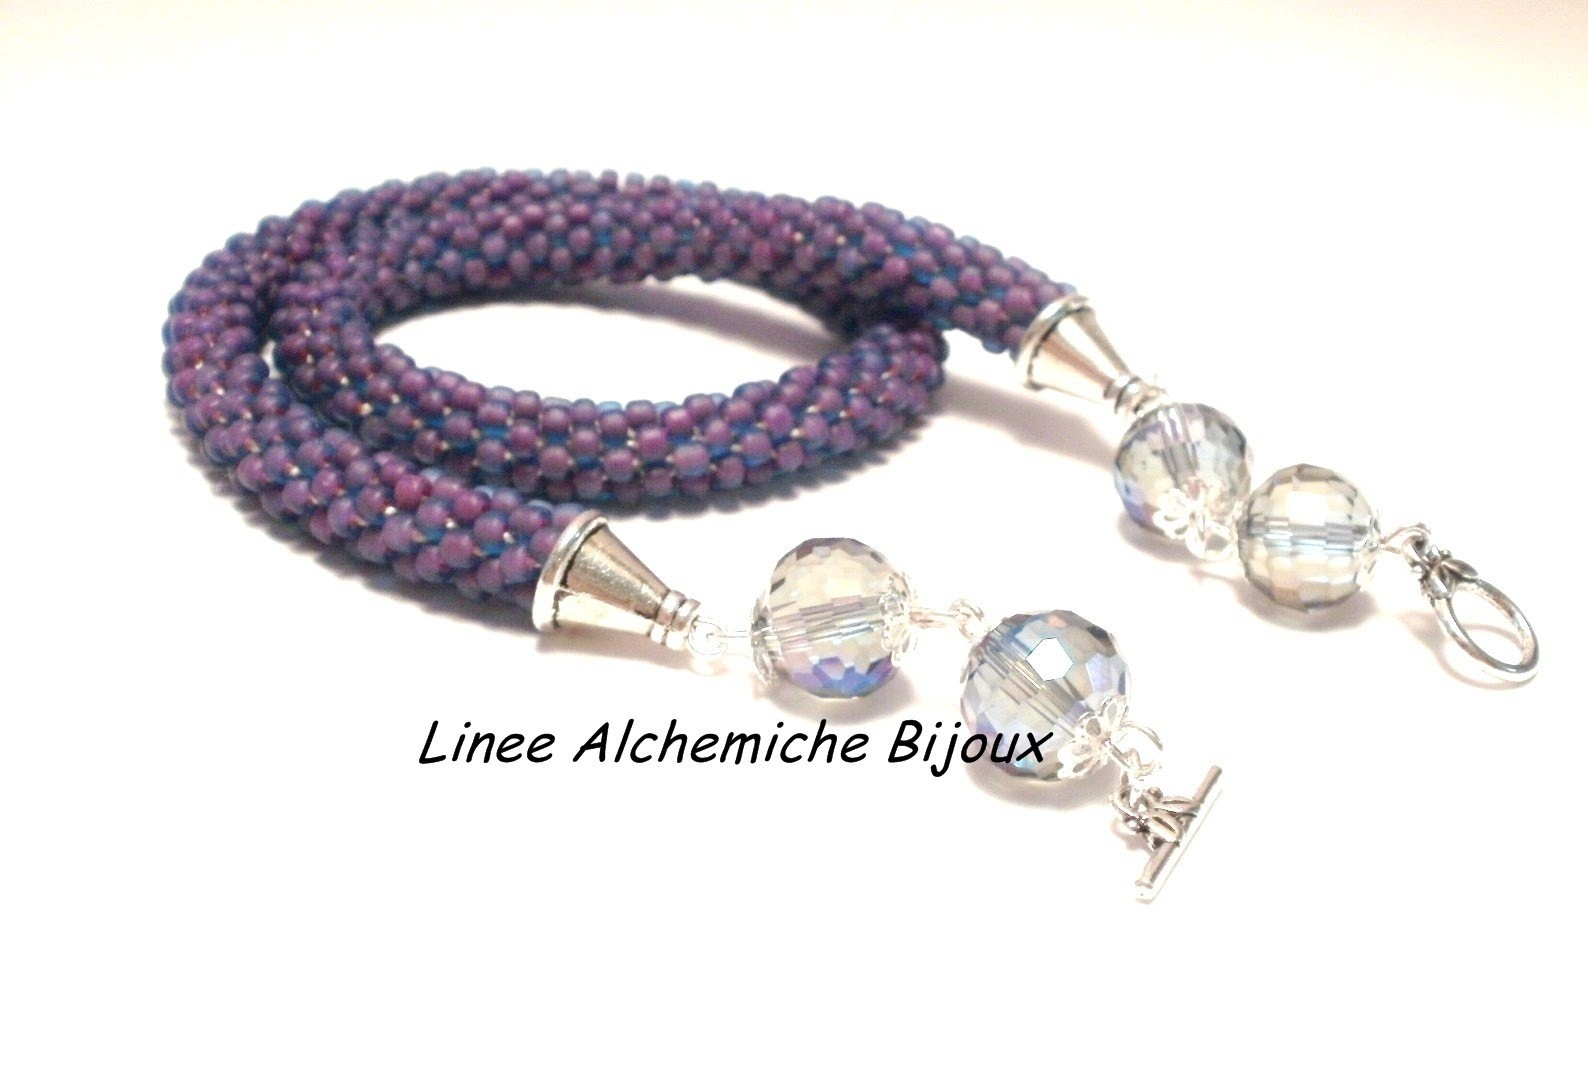 Tutorial bead crochet - Video introduzione alla tecnica